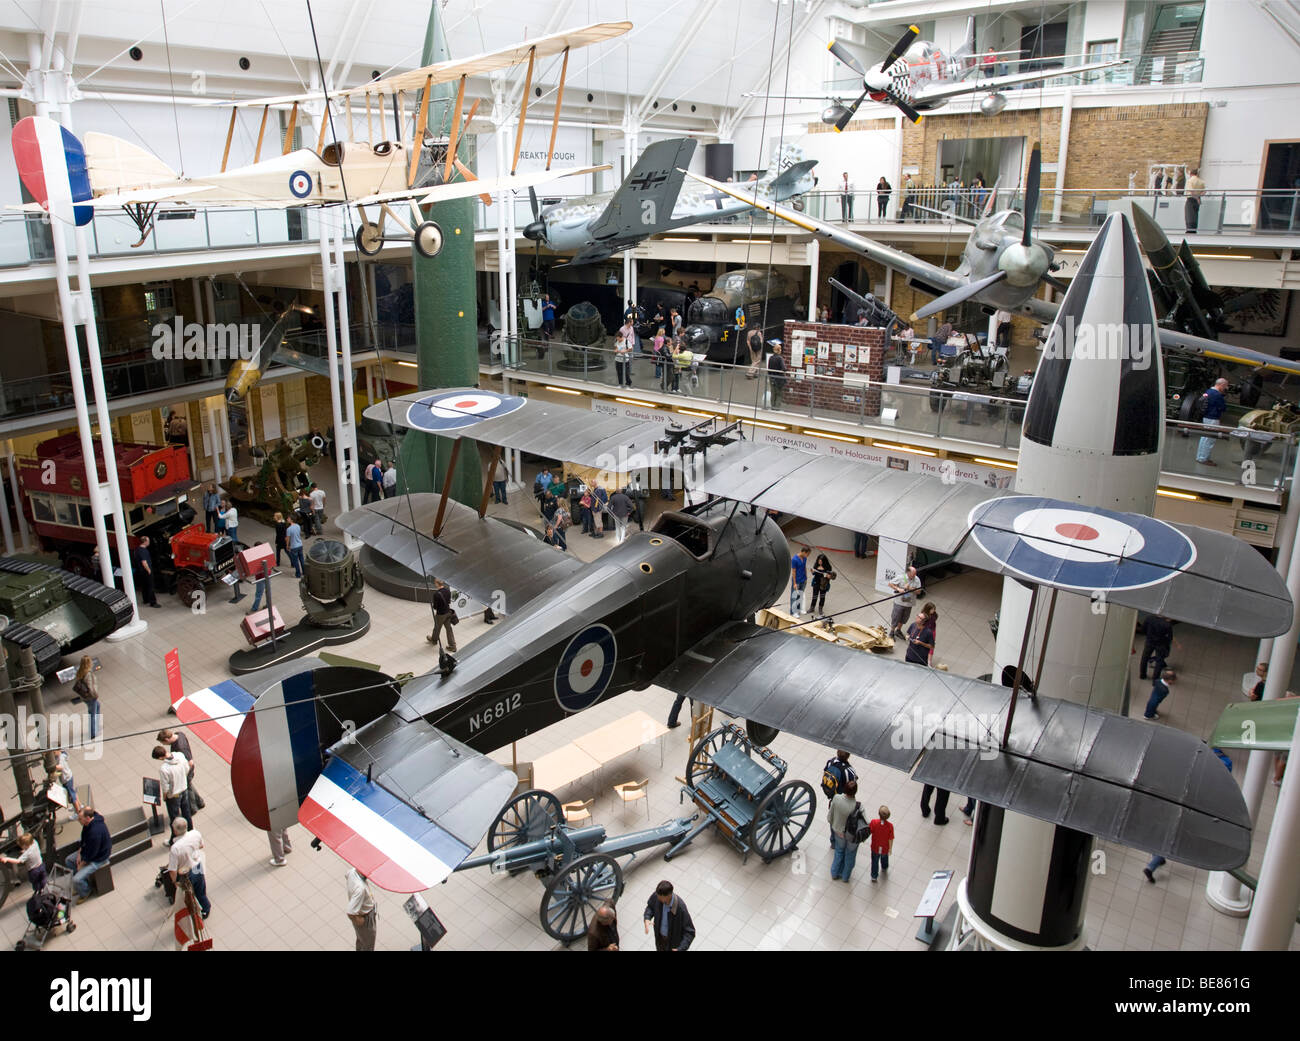 Main Hall - Imperial War Museum - London - Stock Image